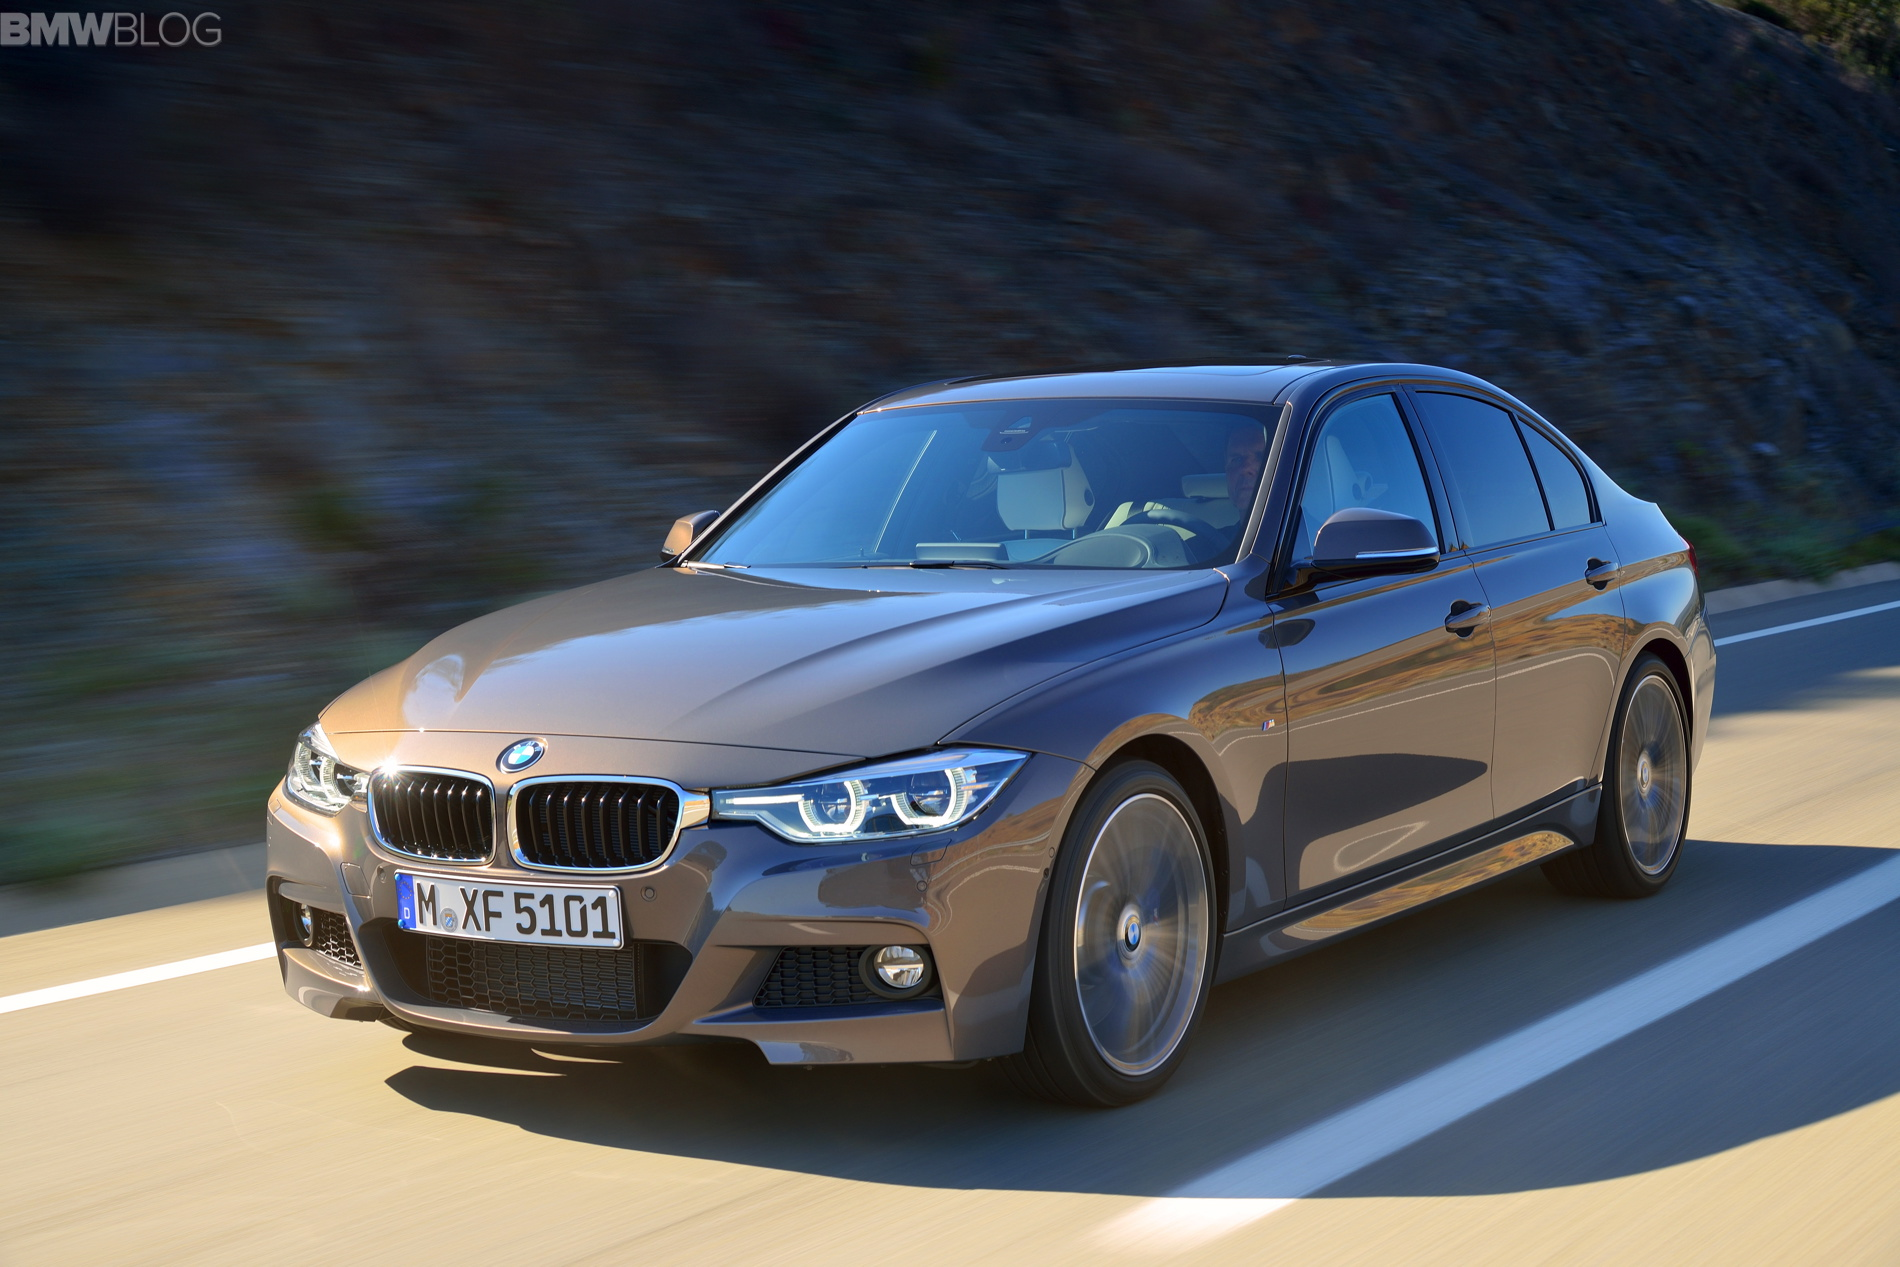 2015 BMW 3 Series Facelift - What Are The Exterior and Interior ...